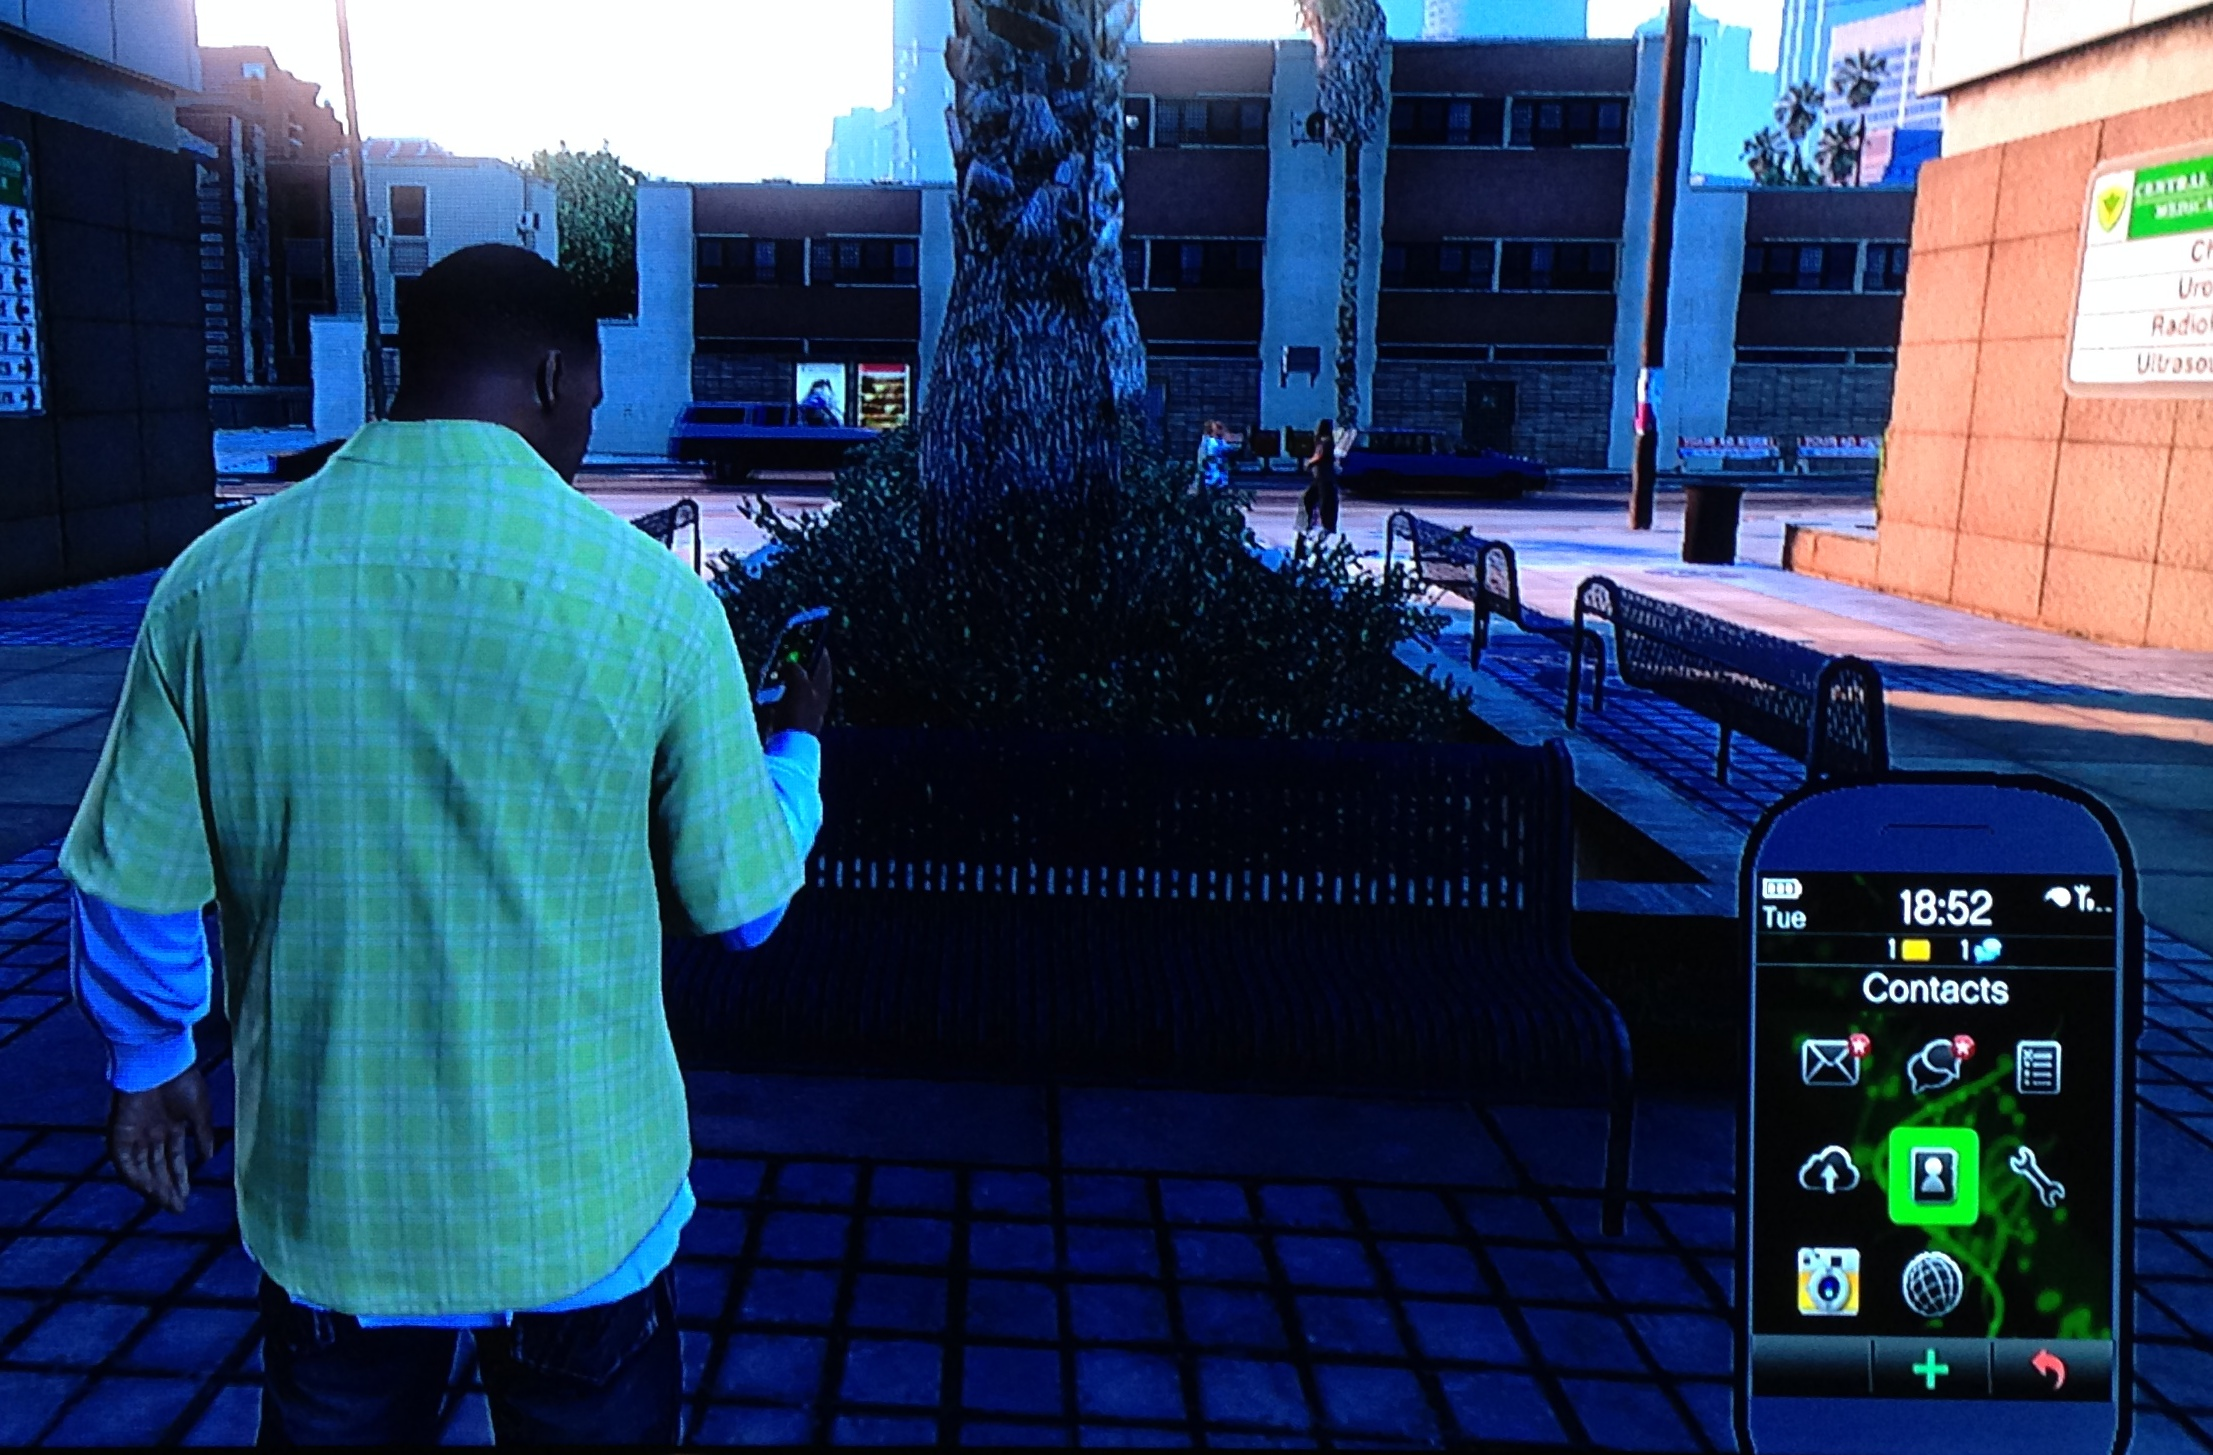 Phone Gta On Android Phone gta 5 phones mock iphone android windows phone users owners are gangsters